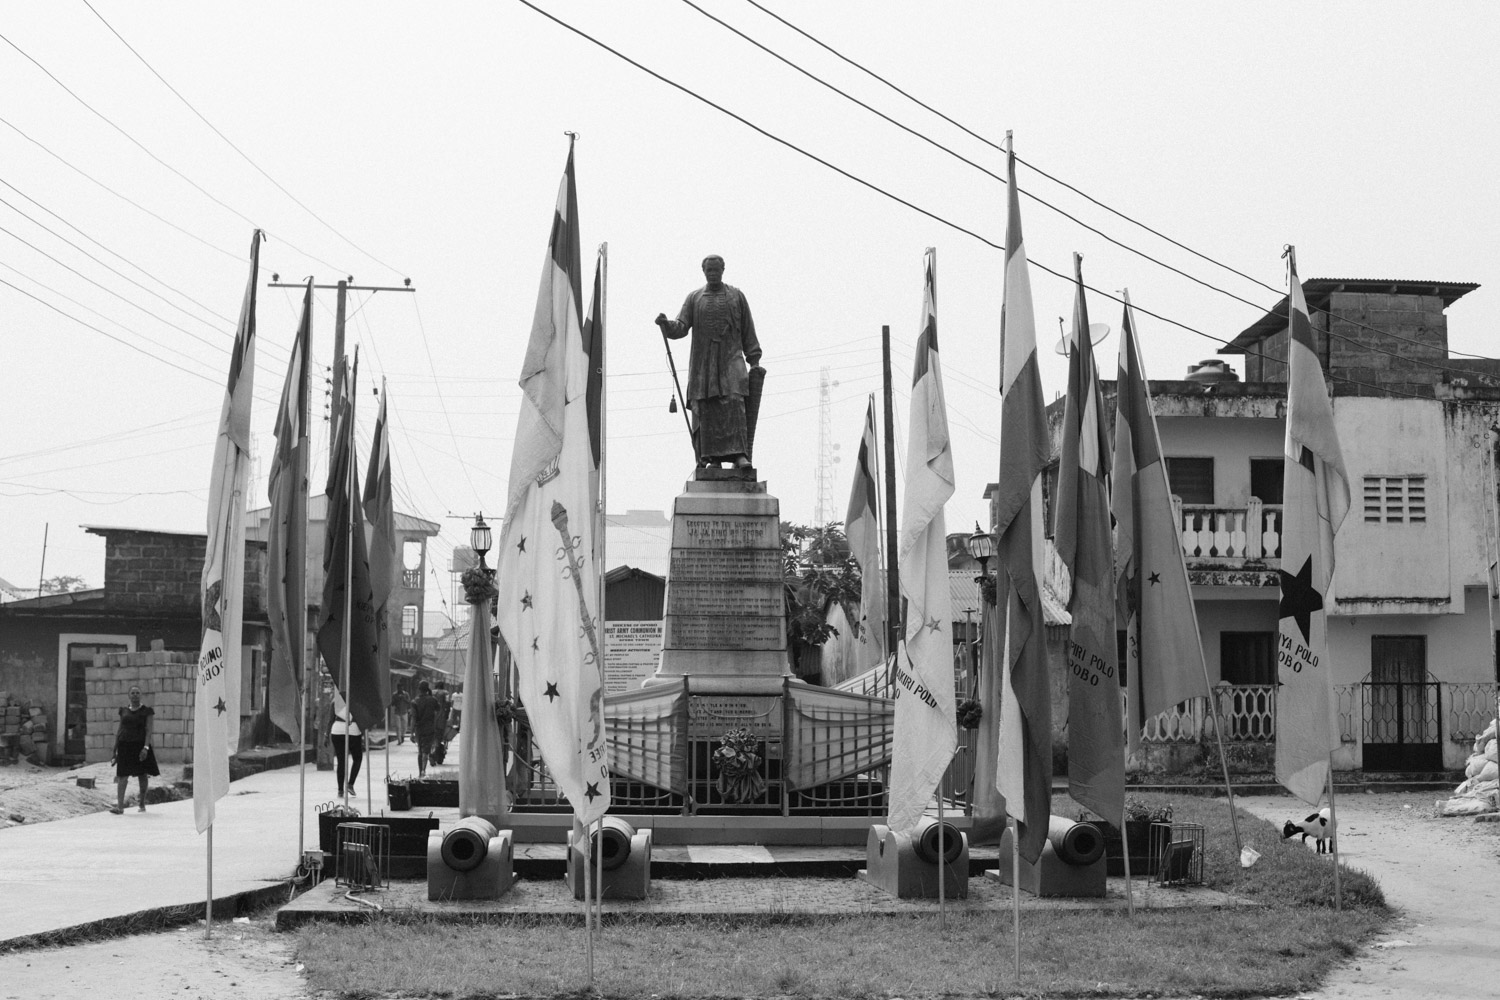 Statue of King Jaja of Opobo showing the flags of the different Compounds or Houses